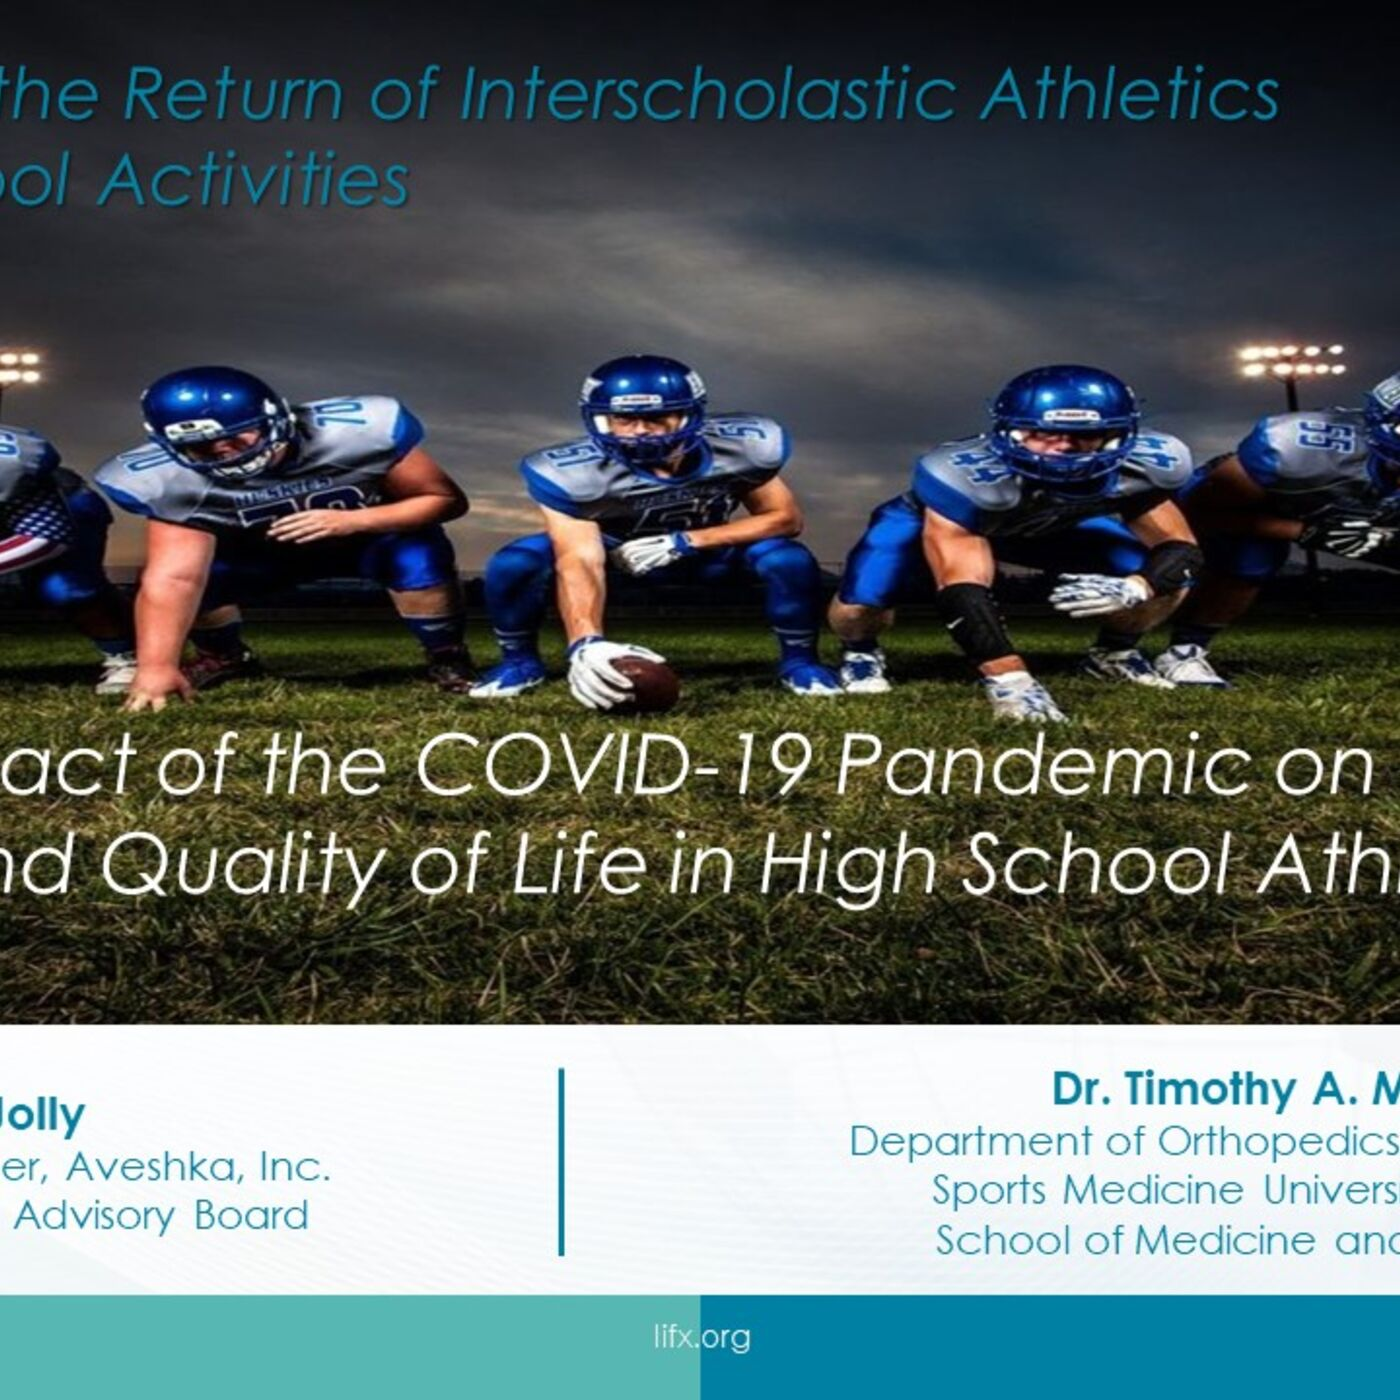 Session 7 - The Impact of the COVID-19 Pandemic on the Health and Quality of Life in High School Athletes